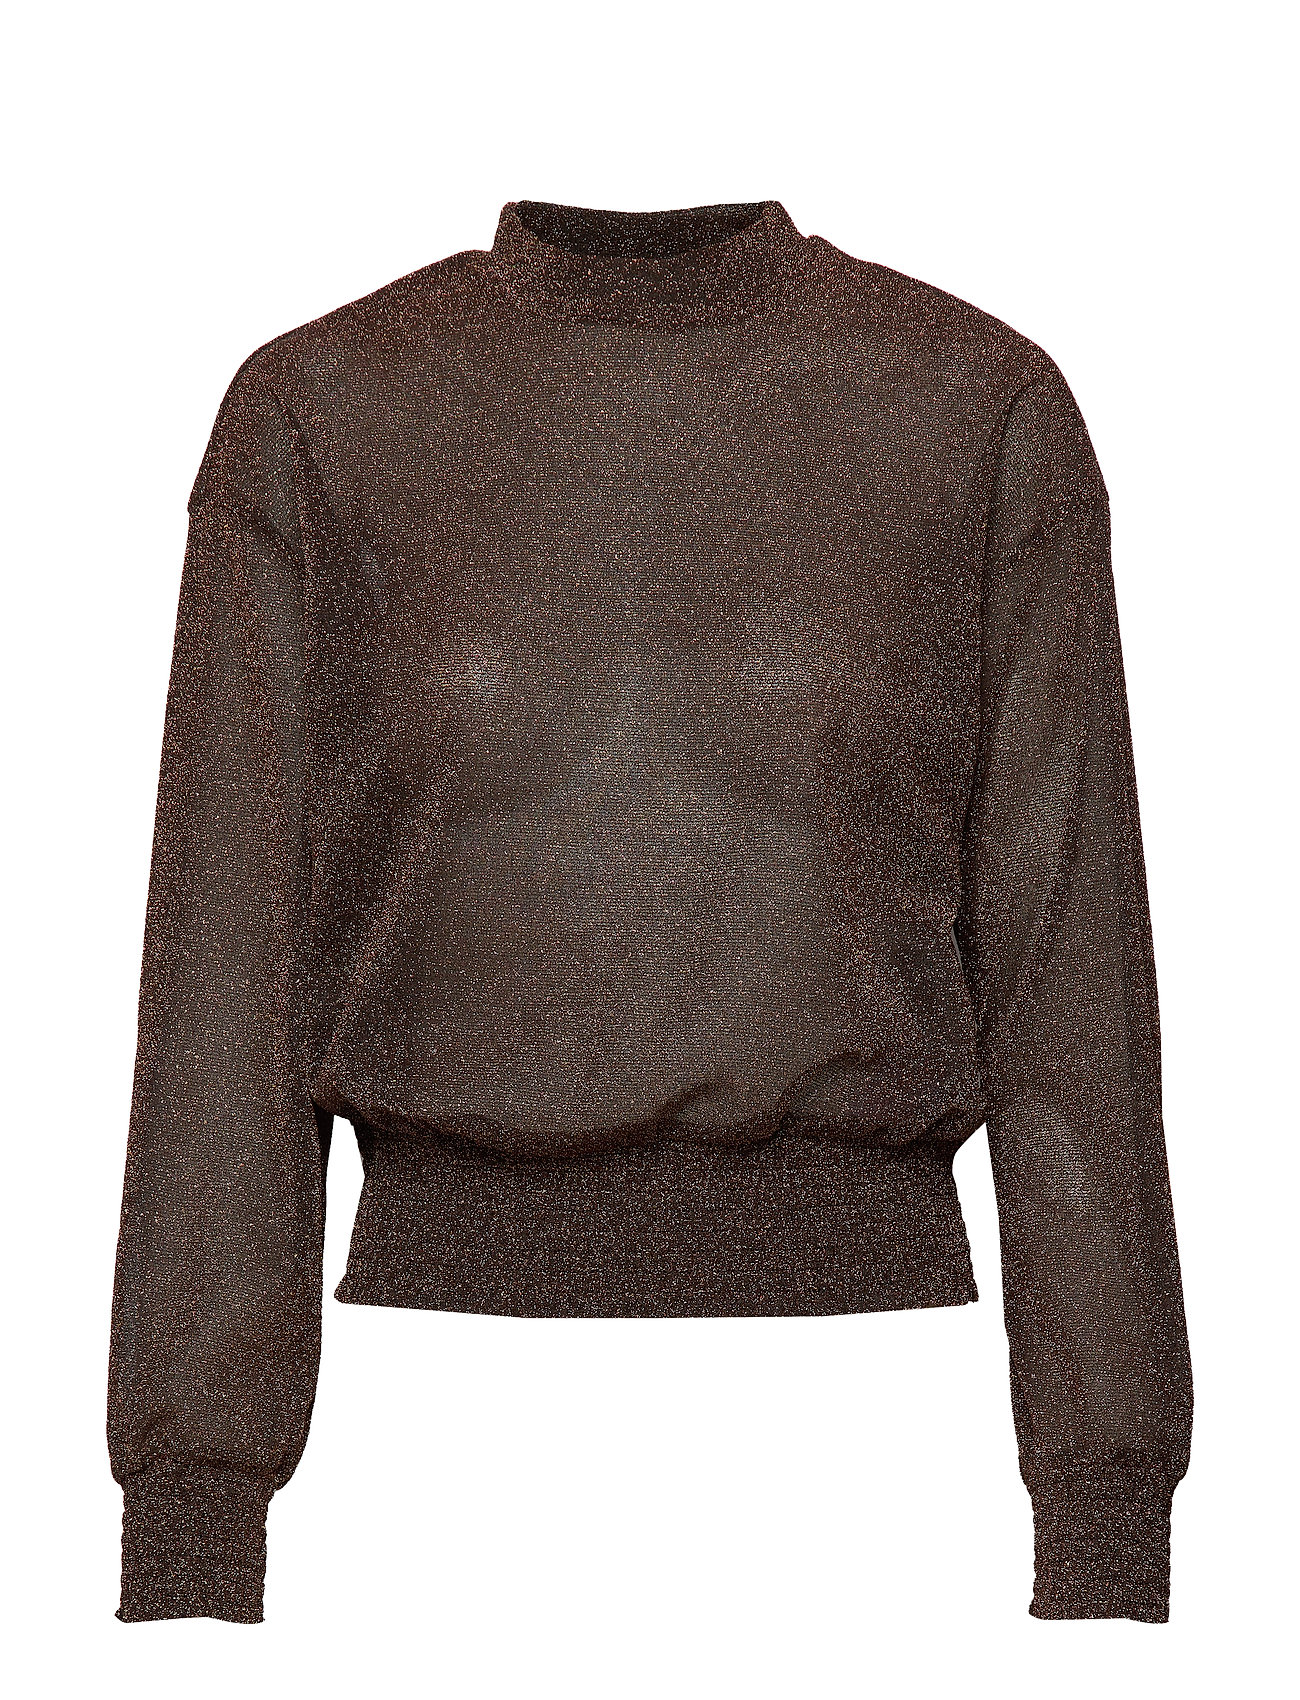 YAS YASMETTE LS TOP BOOZT D2D - COPPER COLOUR